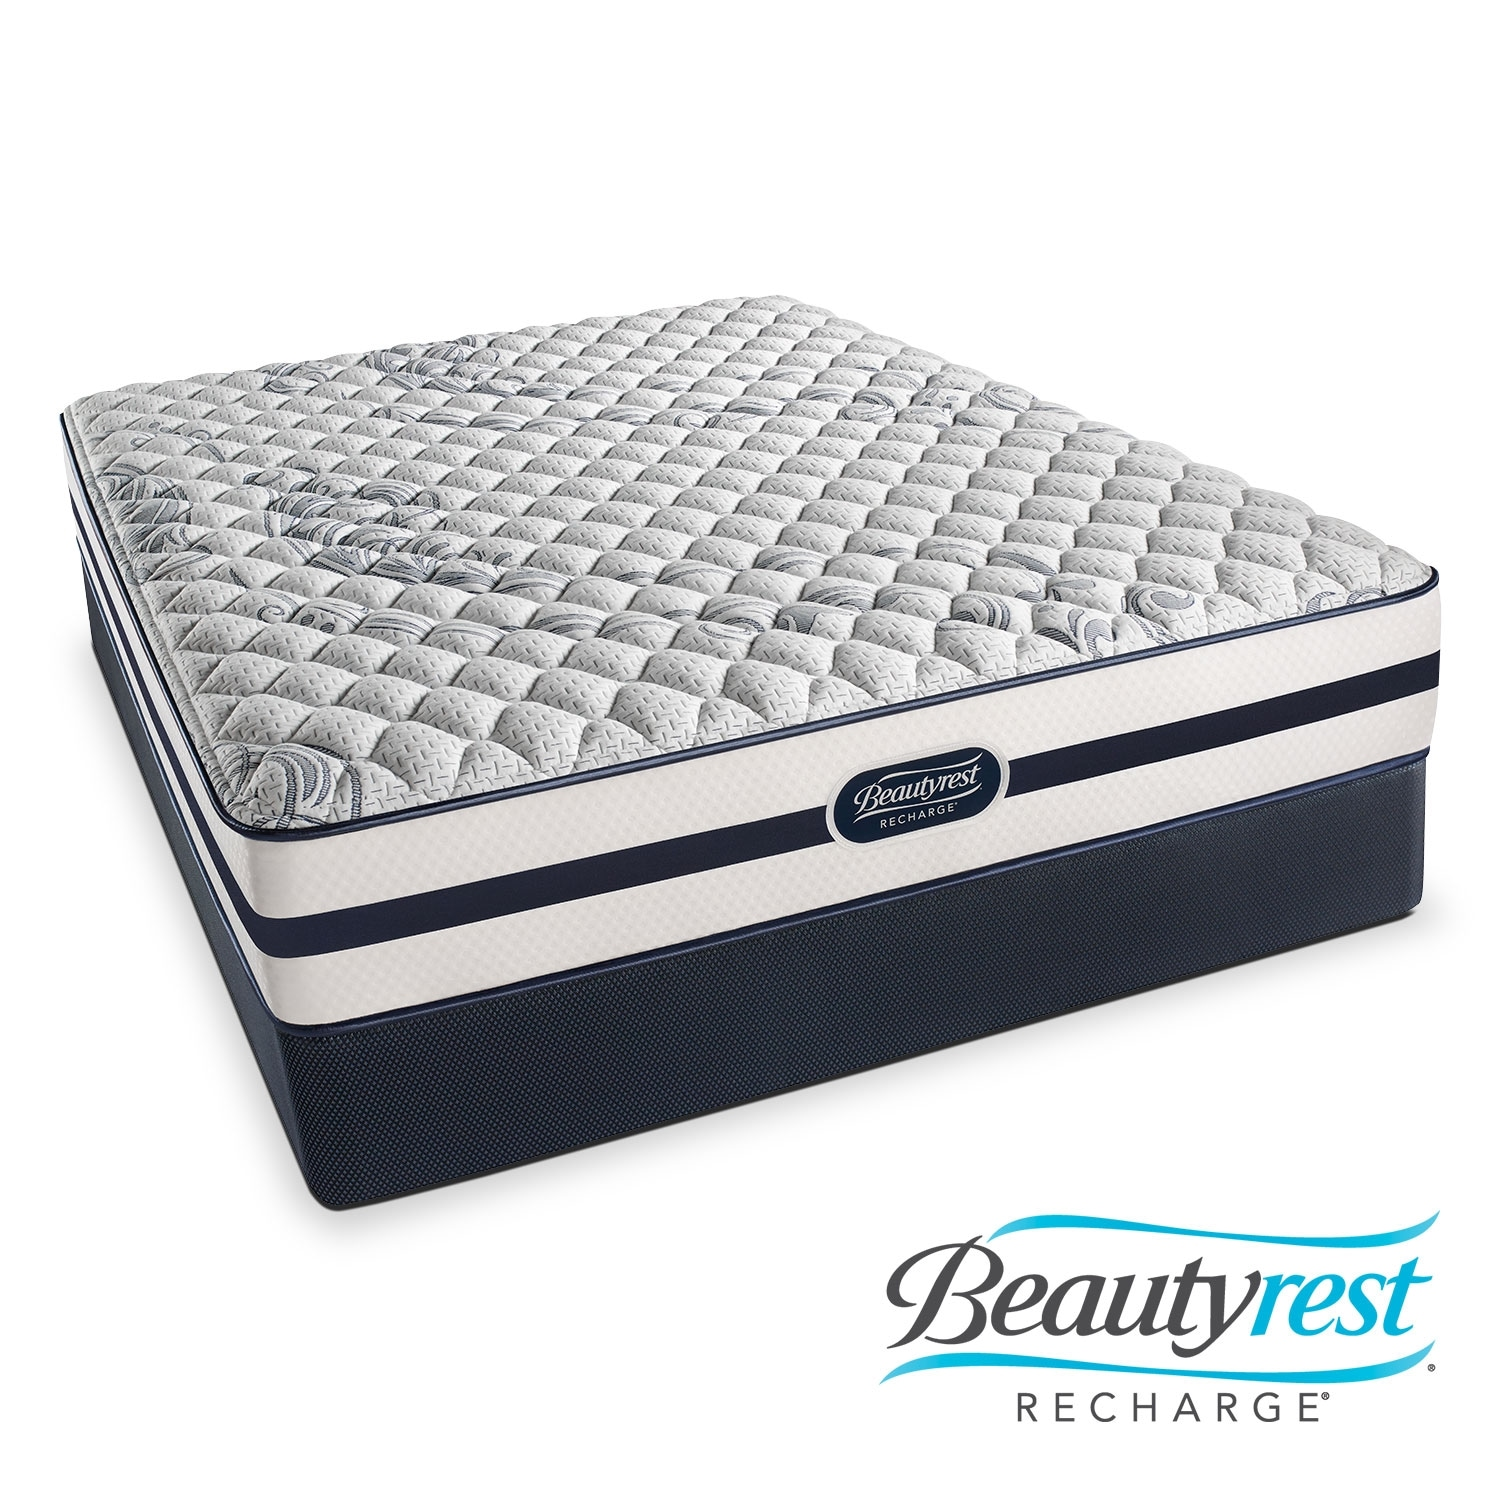 Mattresses and Bedding - Alisa Firm Full Mattress and Foundation Set